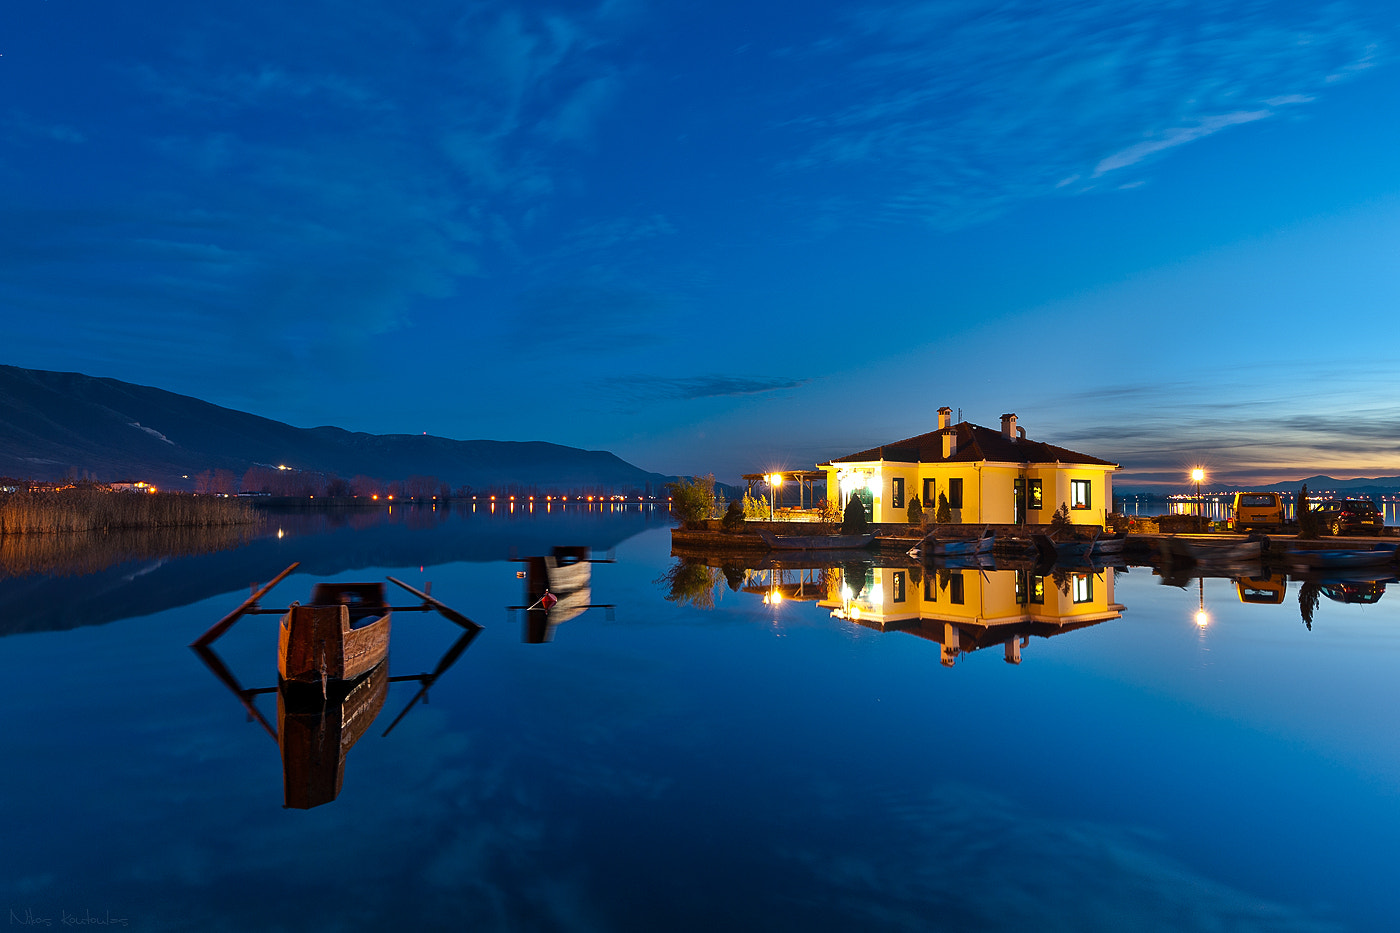 Photograph Reflections by Nikos Koutoulas on 500px